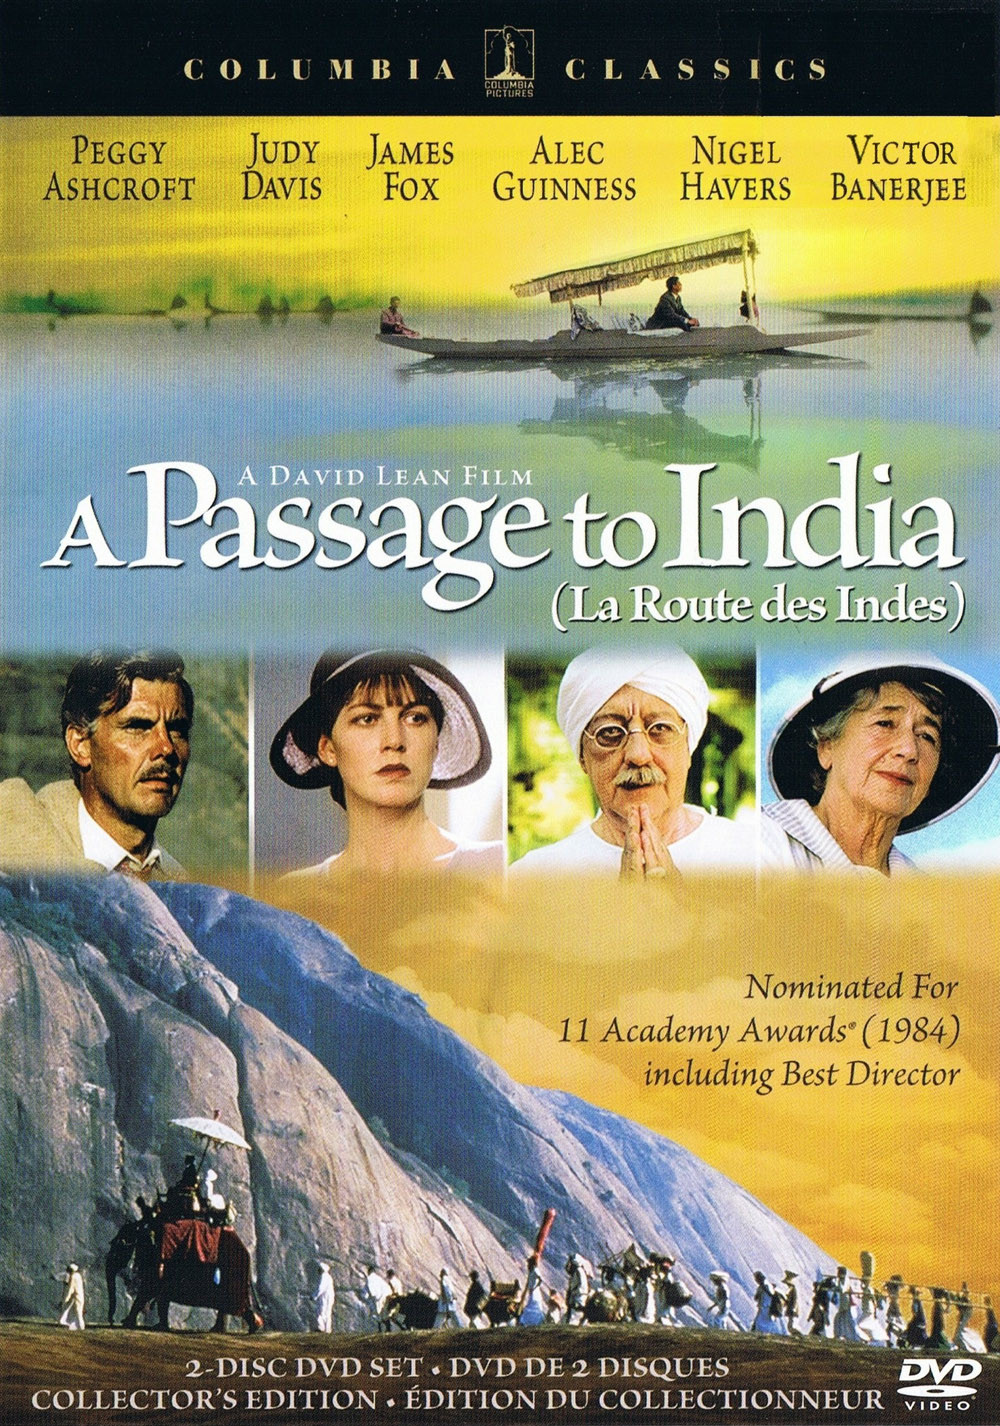 A passage through India